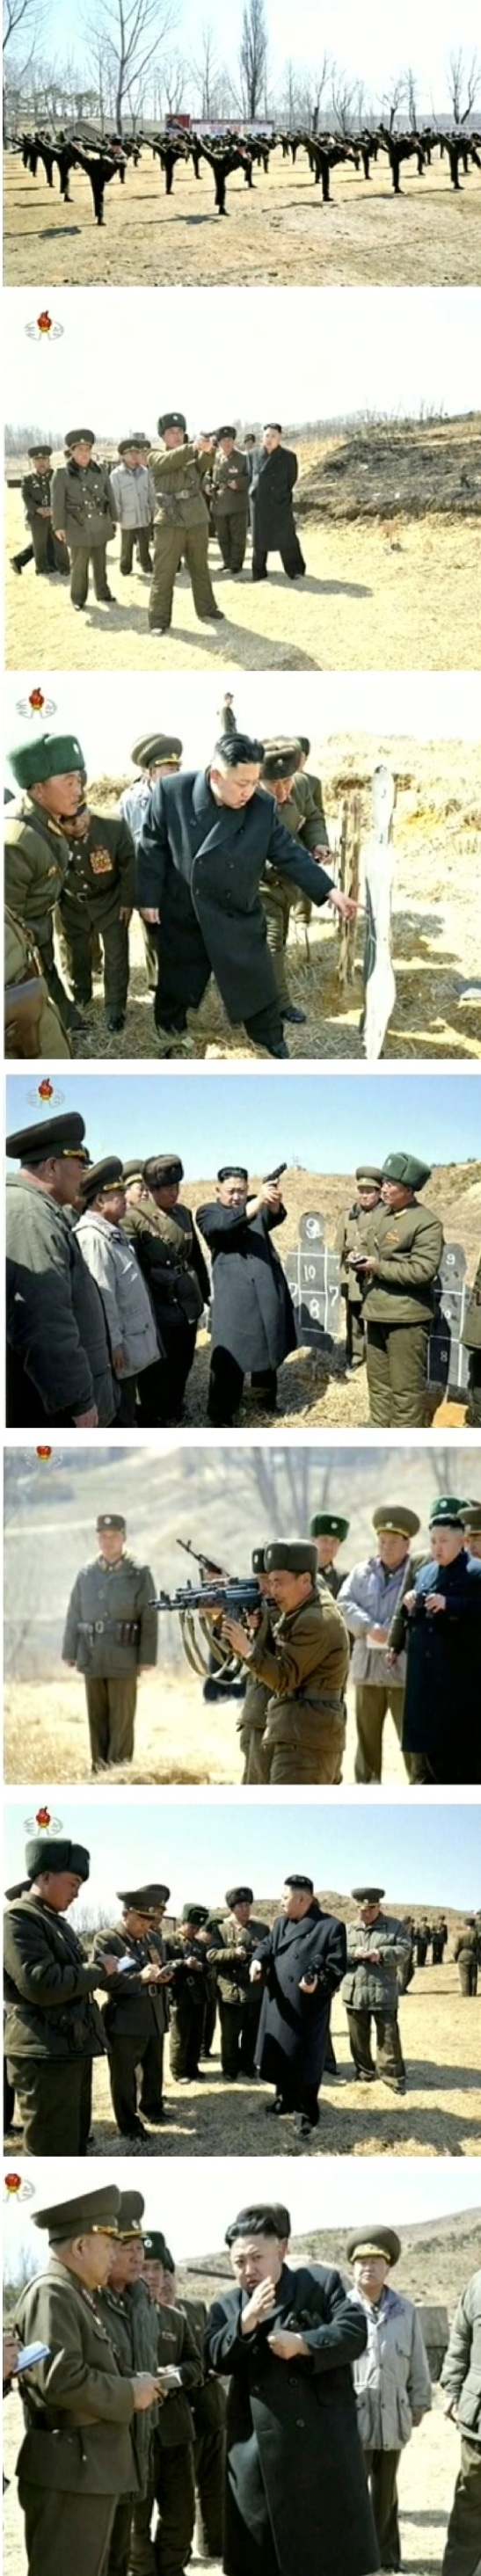 SOF personnel serving in the 2nd Battalion of KPA Unit #1973 participate in small arms drills under the command of Kim Jong Un during his field inspection of the battalion on 23 March 2013 (Photos: KCTV screengrabs)